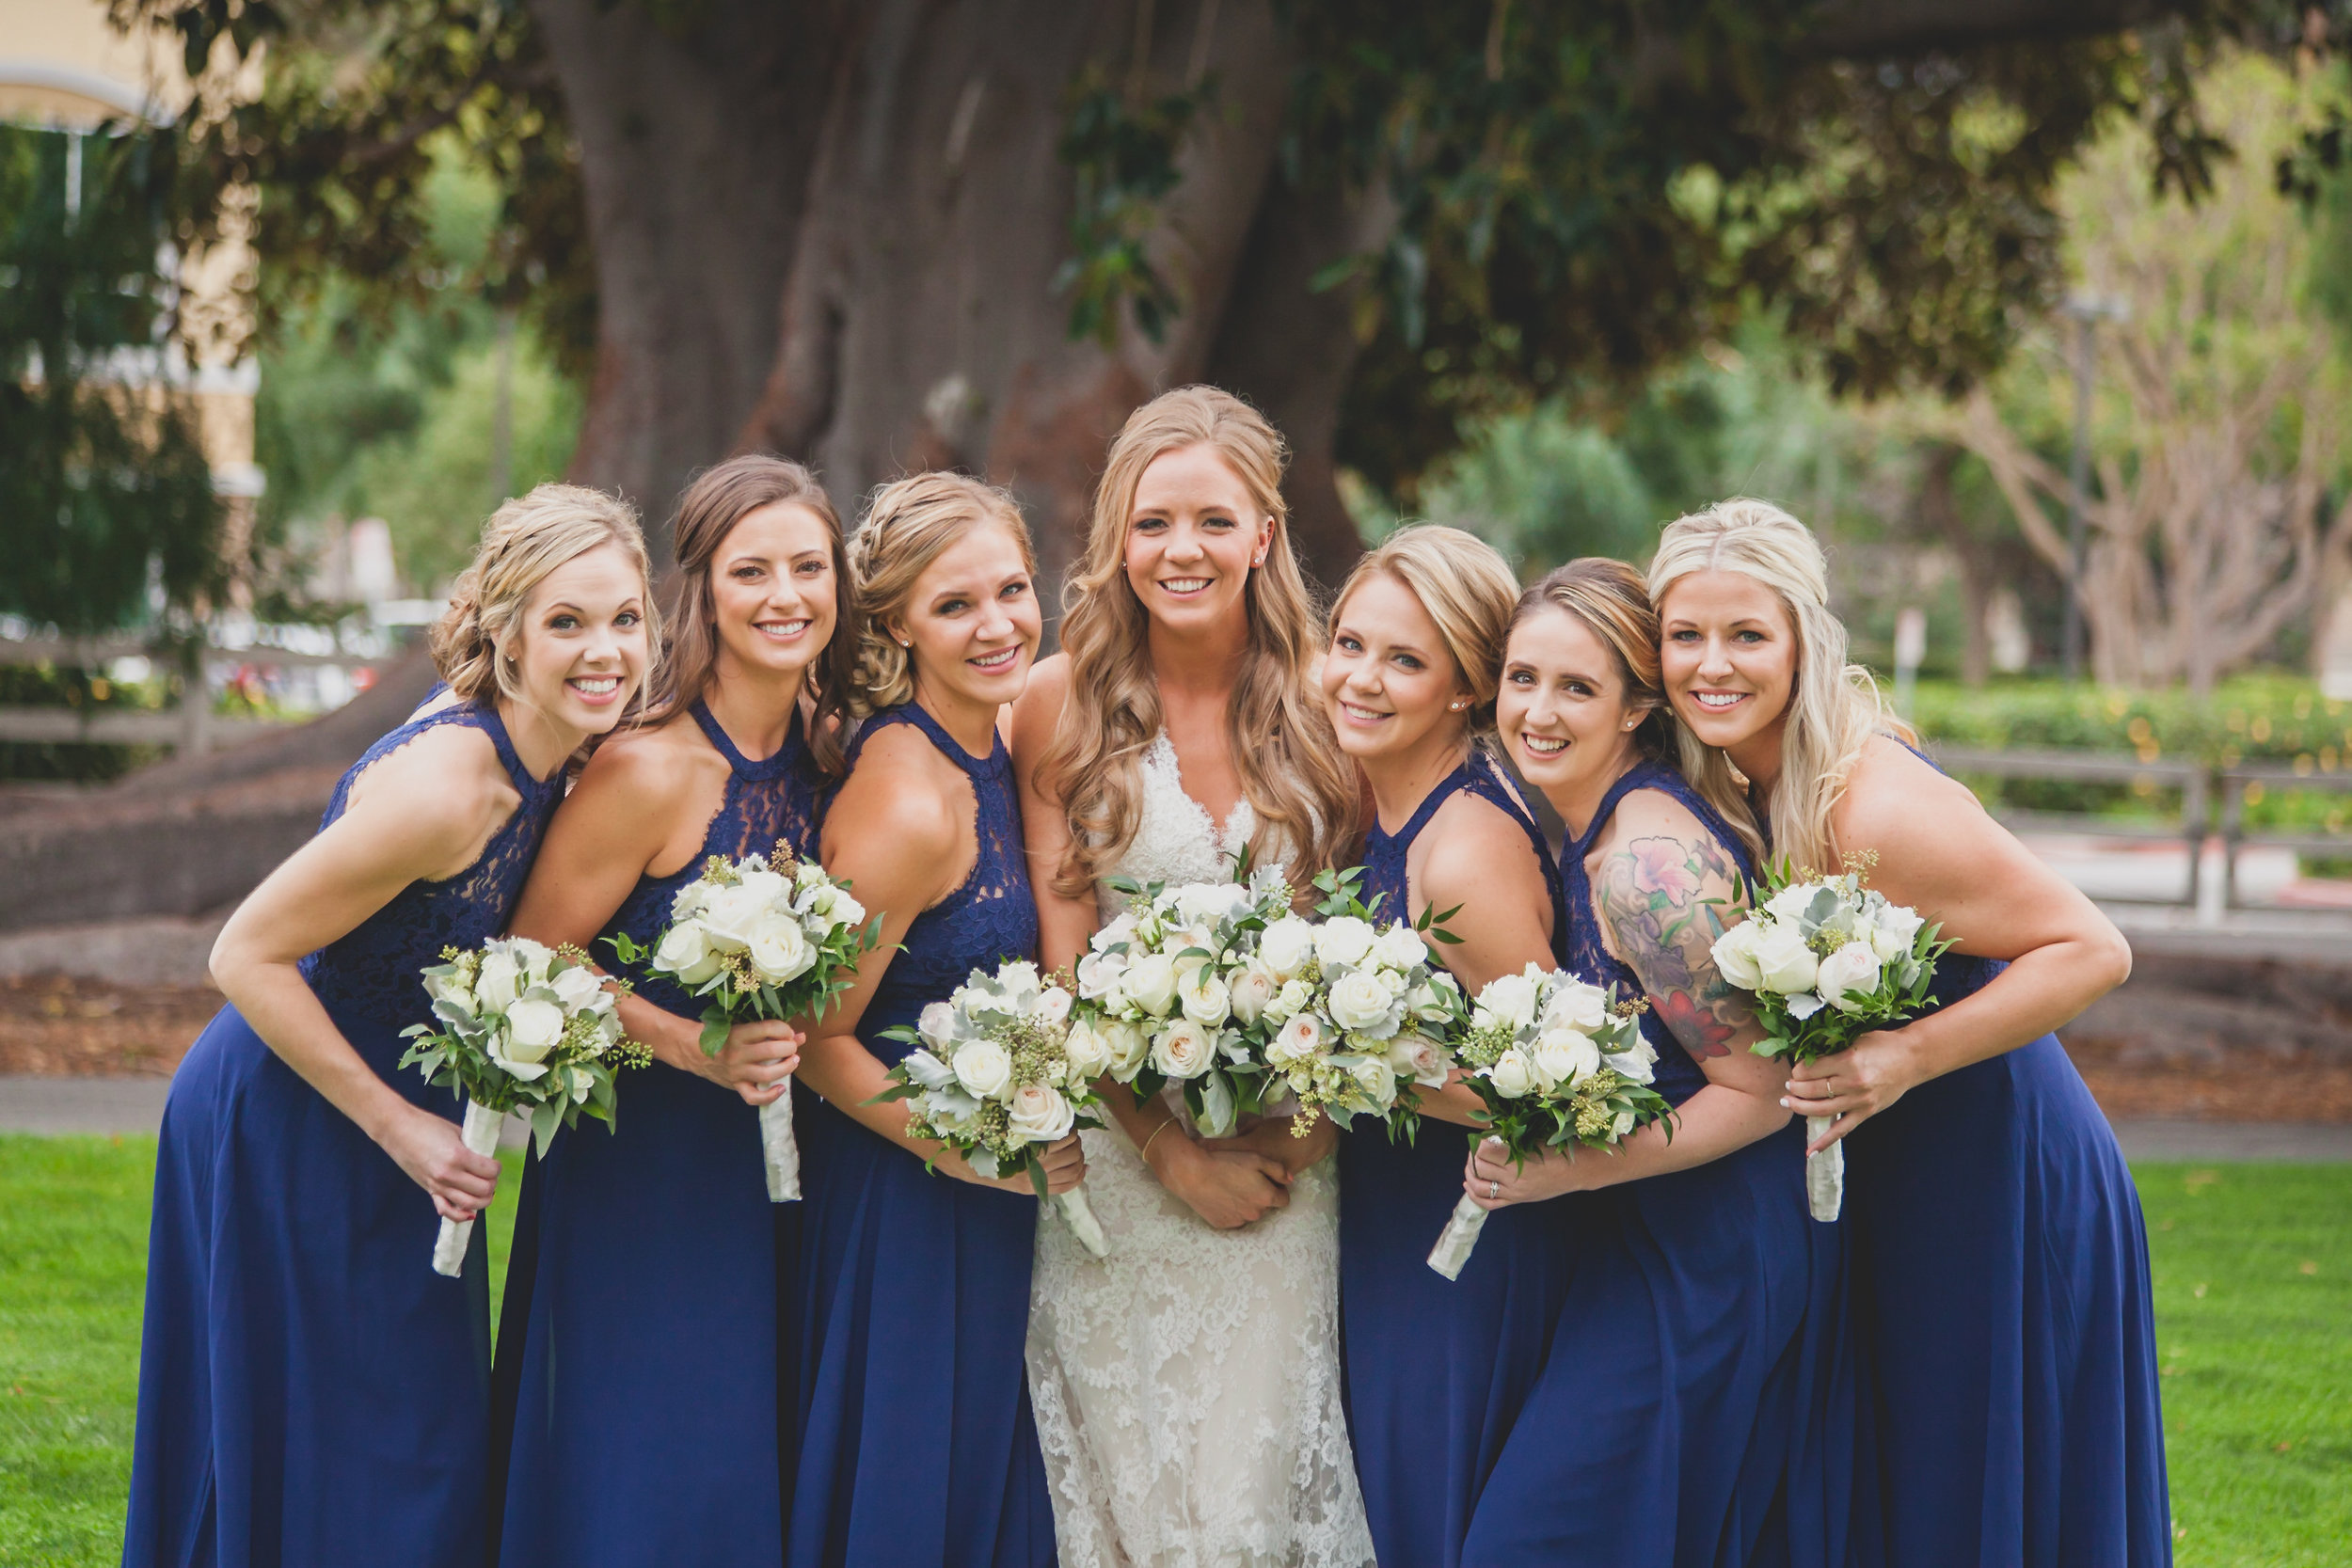 Bridesmaids surrounding the bride holding bouquets of white roses.